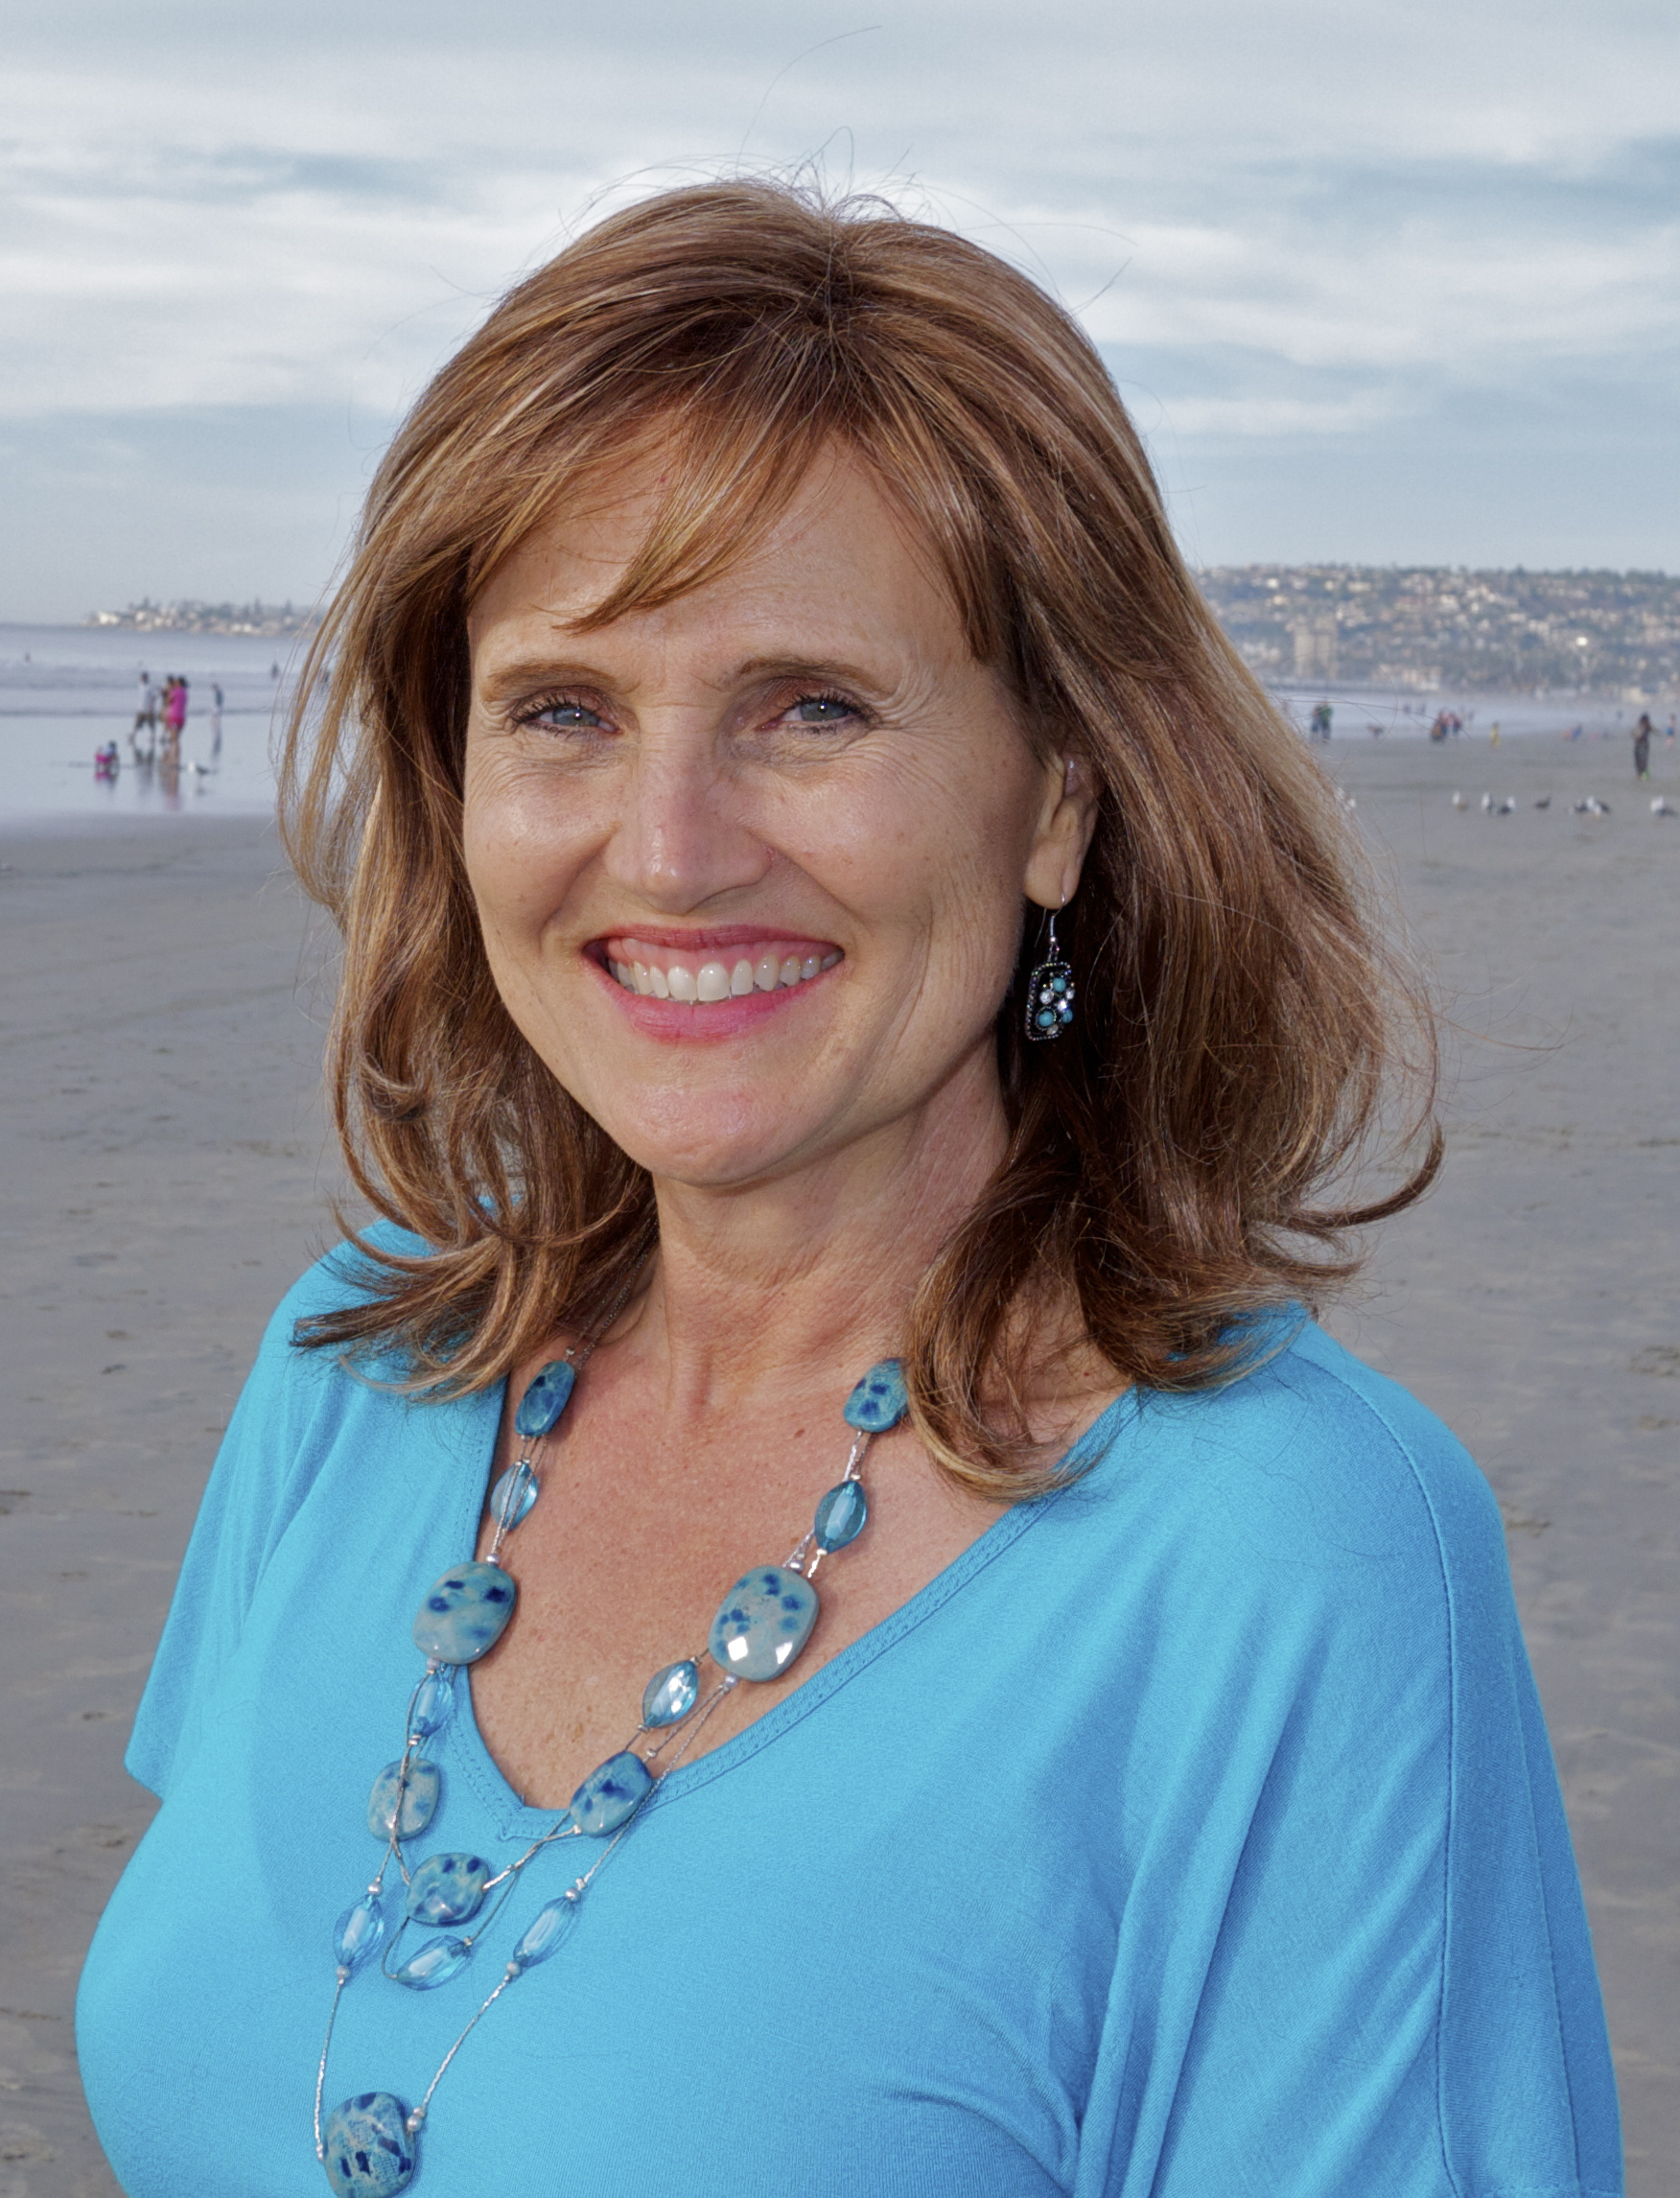 """About the Author: - Carolyn Jaynes will support, uplift, and empower you with validating classes, books, and consulting services.You will learn to trust your intuition, manifest more of what you want, become aware of signs from loved ones in spirit, and use practical """"power tools"""" to raise your spiritual vibration to bring more good into your life.Carolyn Jaynes, M.A. is a 5-Star Amazon Author of inspiring book of her true spiritual adventure stories: Sprinkles from Heaven – Stories of Serendipity (2014) and Twinkles from Heaven – The Mystical in the Mundane (2017).Ms. Jaynes is also the only local contributor to Chicken Soup for The Soul - Angels All Around (2019) with her amazing story, The Invisible Life Saver.Carolyn earned her master of arts degree in Counseling Psychology at National University in California, trained as a psychotherapist, and worked as a Support Group Facilitator, Licensed Social Worker, and Certified Alcohol & Drug Educator. She loves teachng to empower you."""